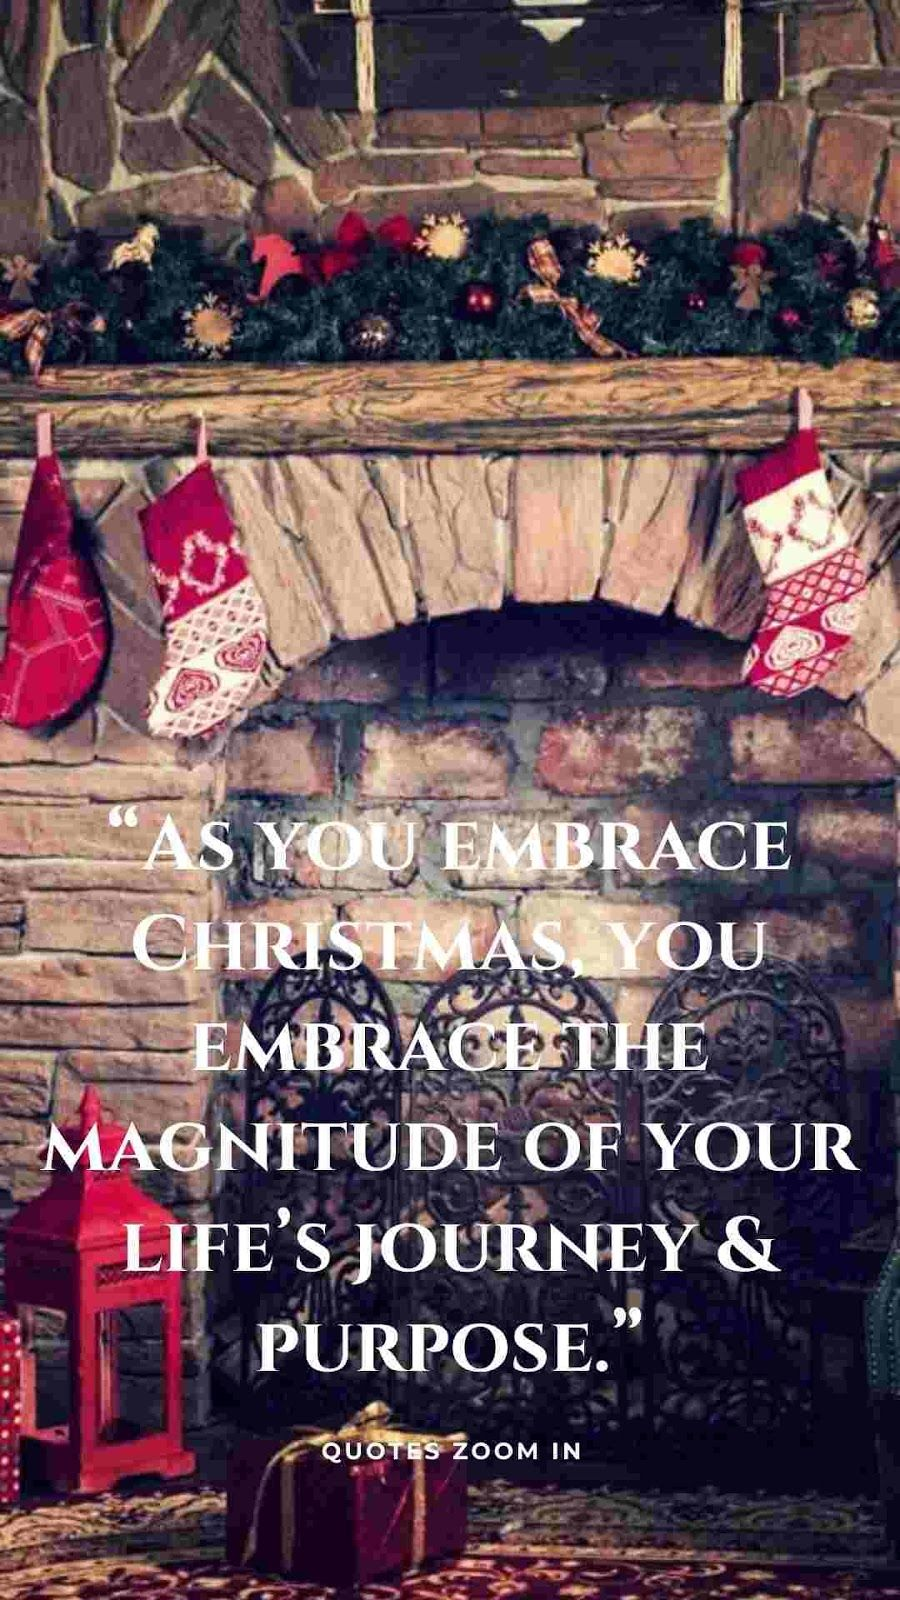 Happy Christmas Quotes Xmas Jesus Funny Christmas Wishes Inspirational Christmas Message Merry Christmas Greetings Message